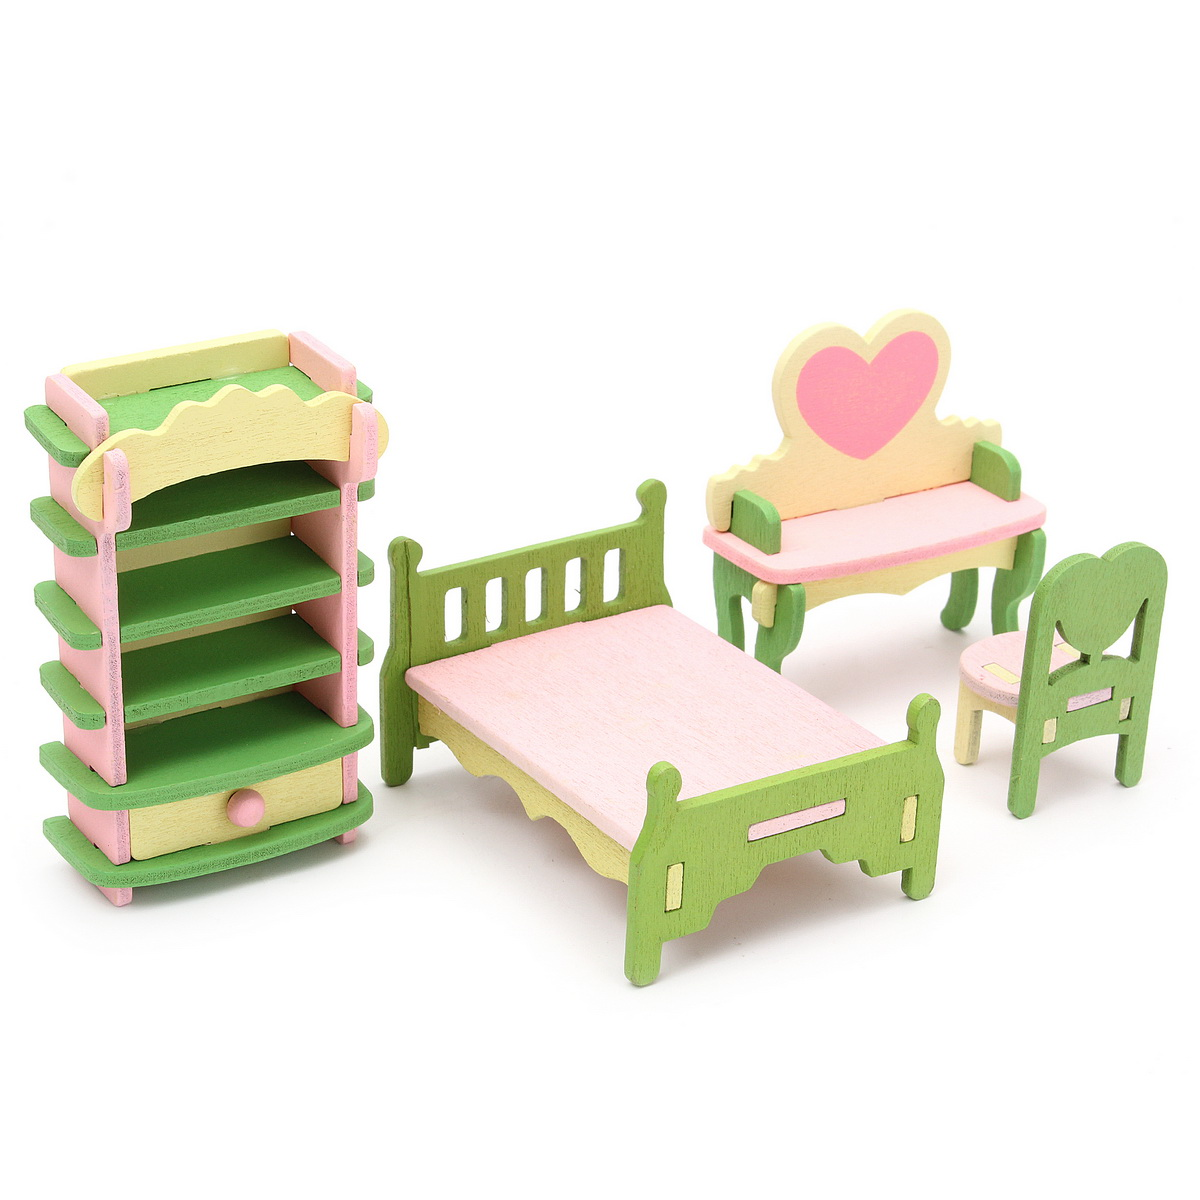 Toys Dollhouse Furniture Doll Accessories Wooden Dolls House